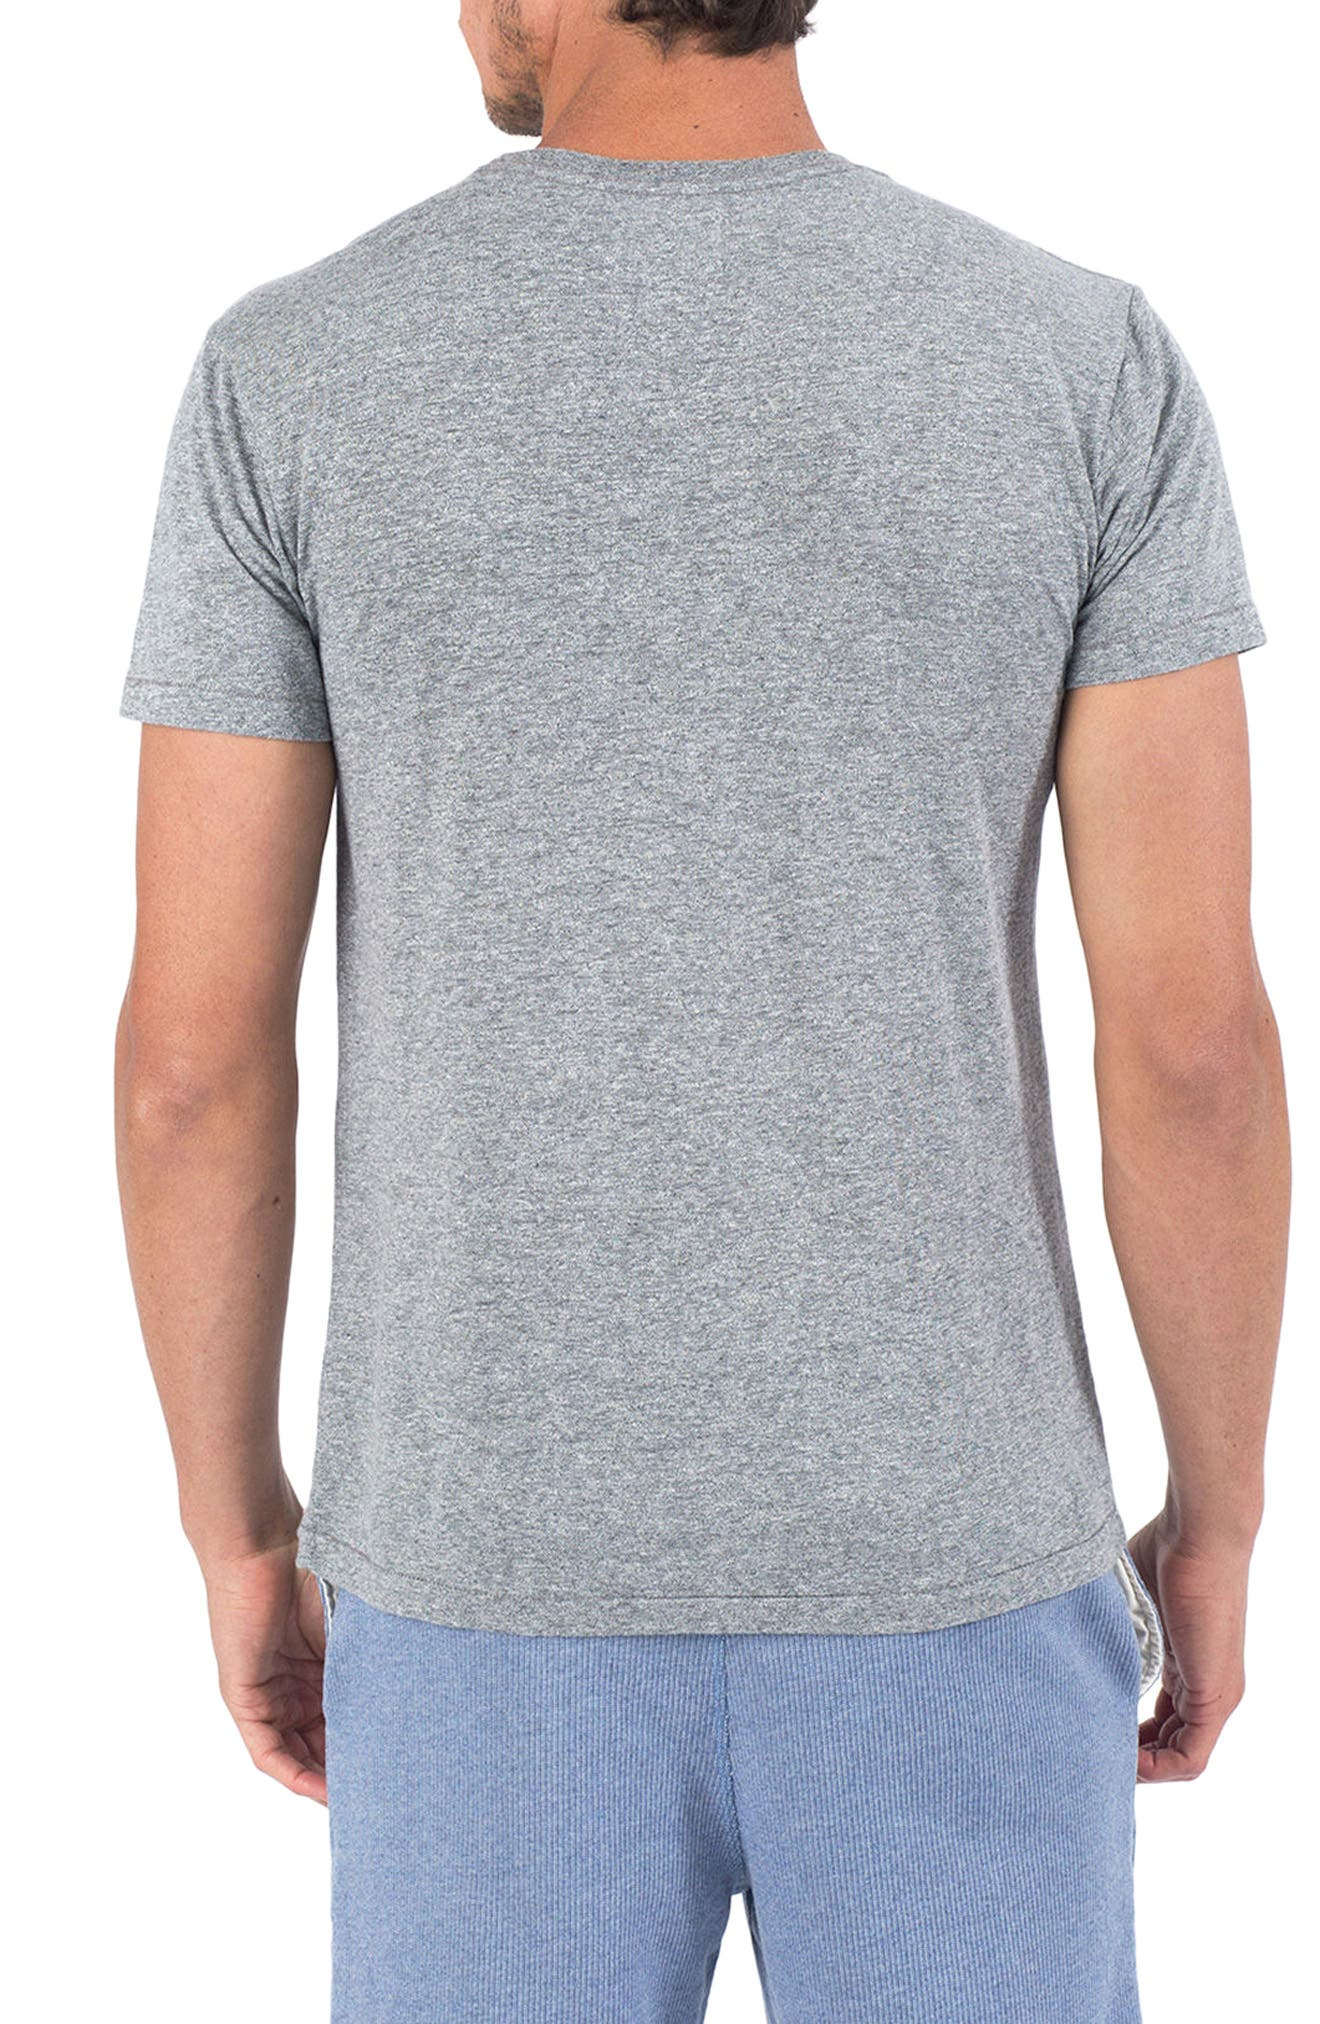 Too Legité To Quité Graphic T-Shirt,                             Alternate thumbnail 2, color,                             Heather Grey